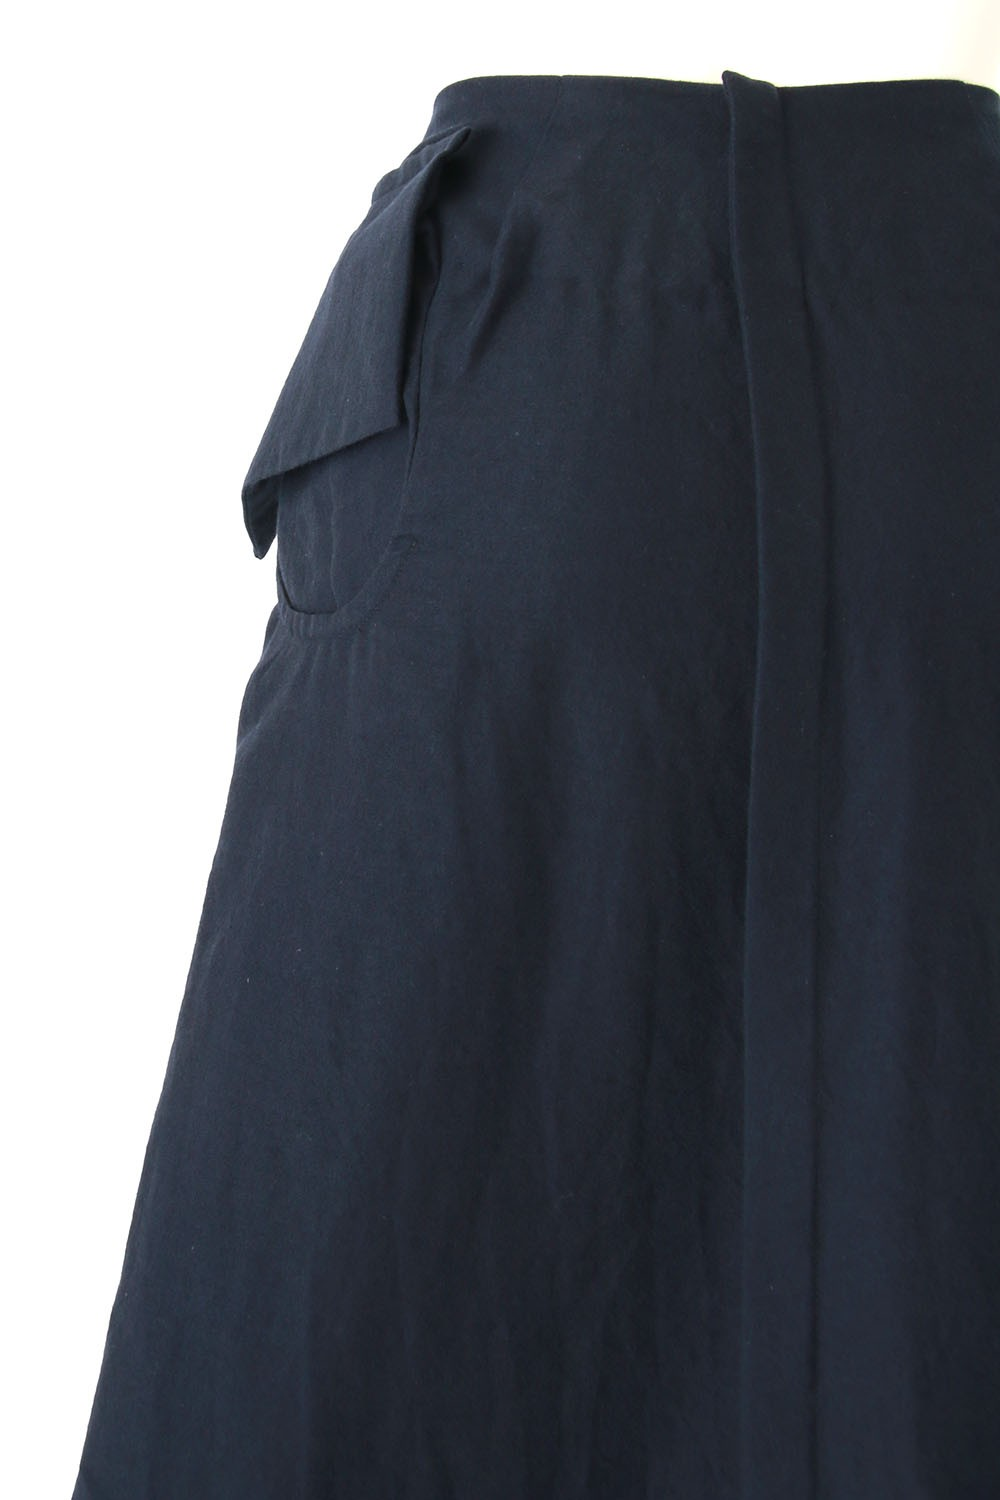 Wool / Cotton Twill Washed Skirt - 04-S02